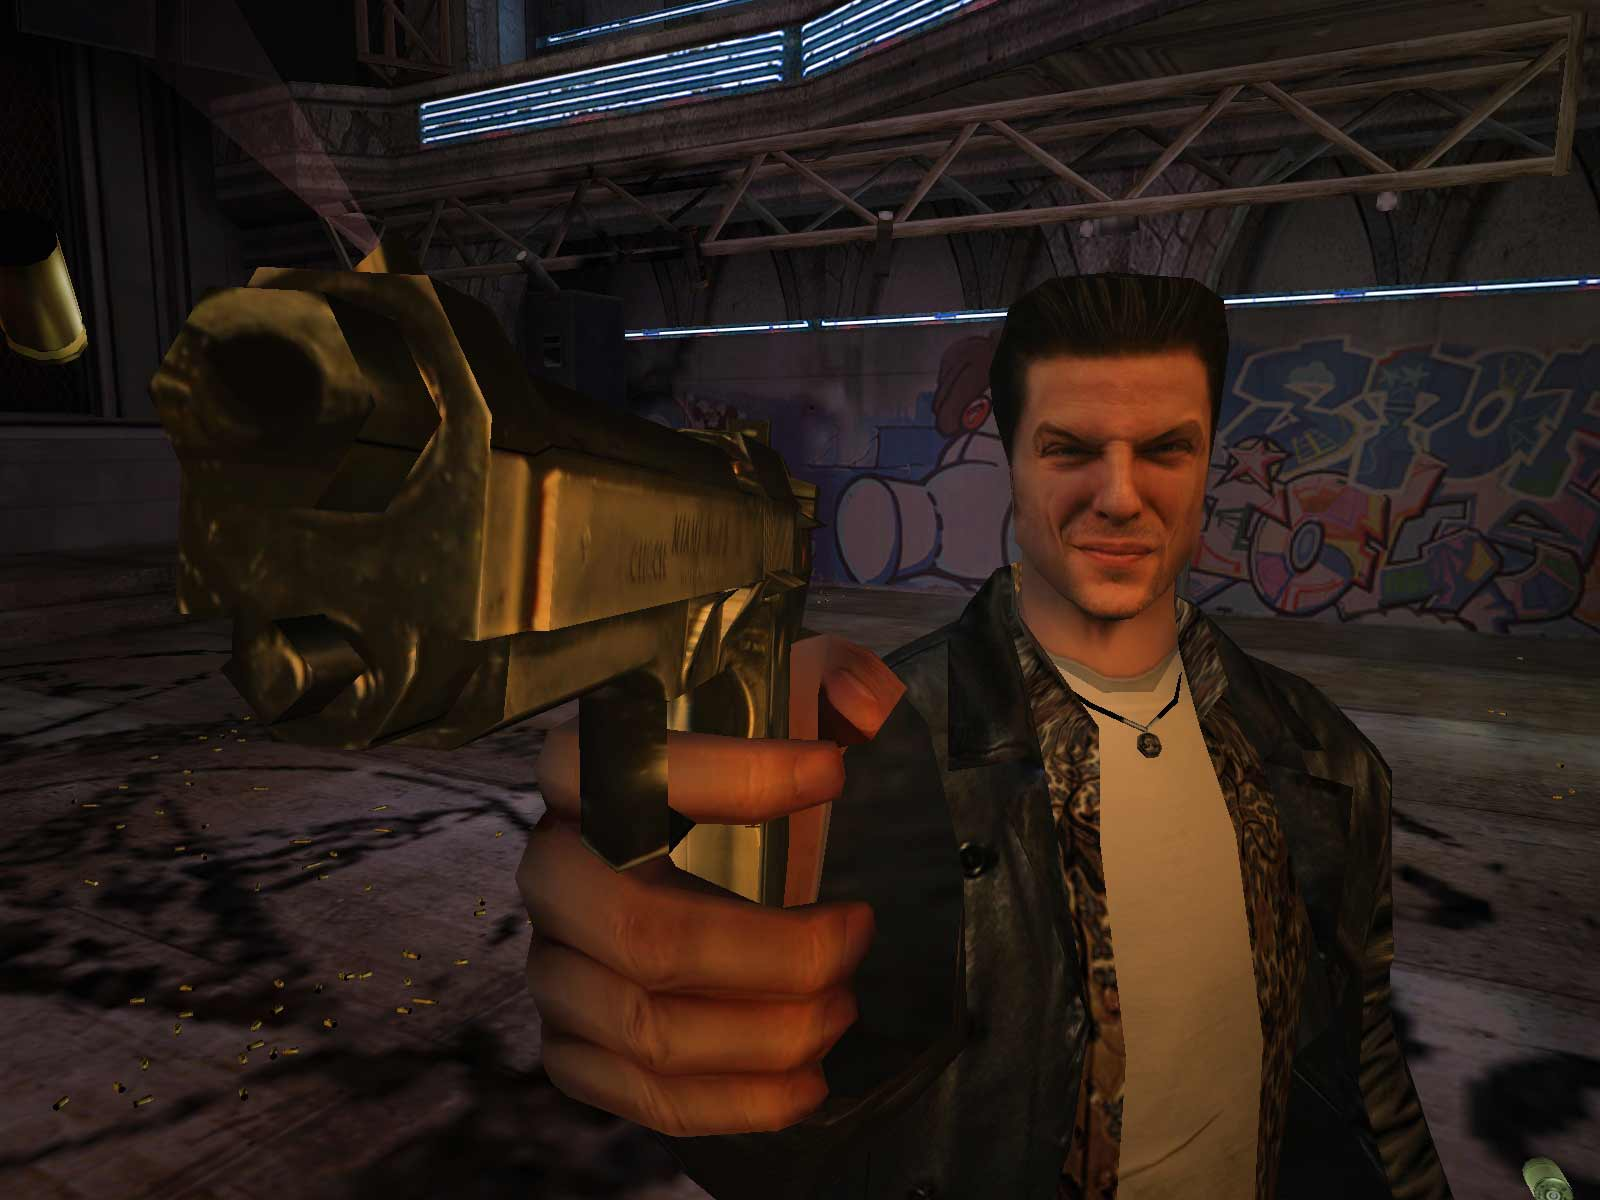 Max Payne, the game that has put Remedy on the map. Writer Sam Lake's face was actually mapped to the game character.